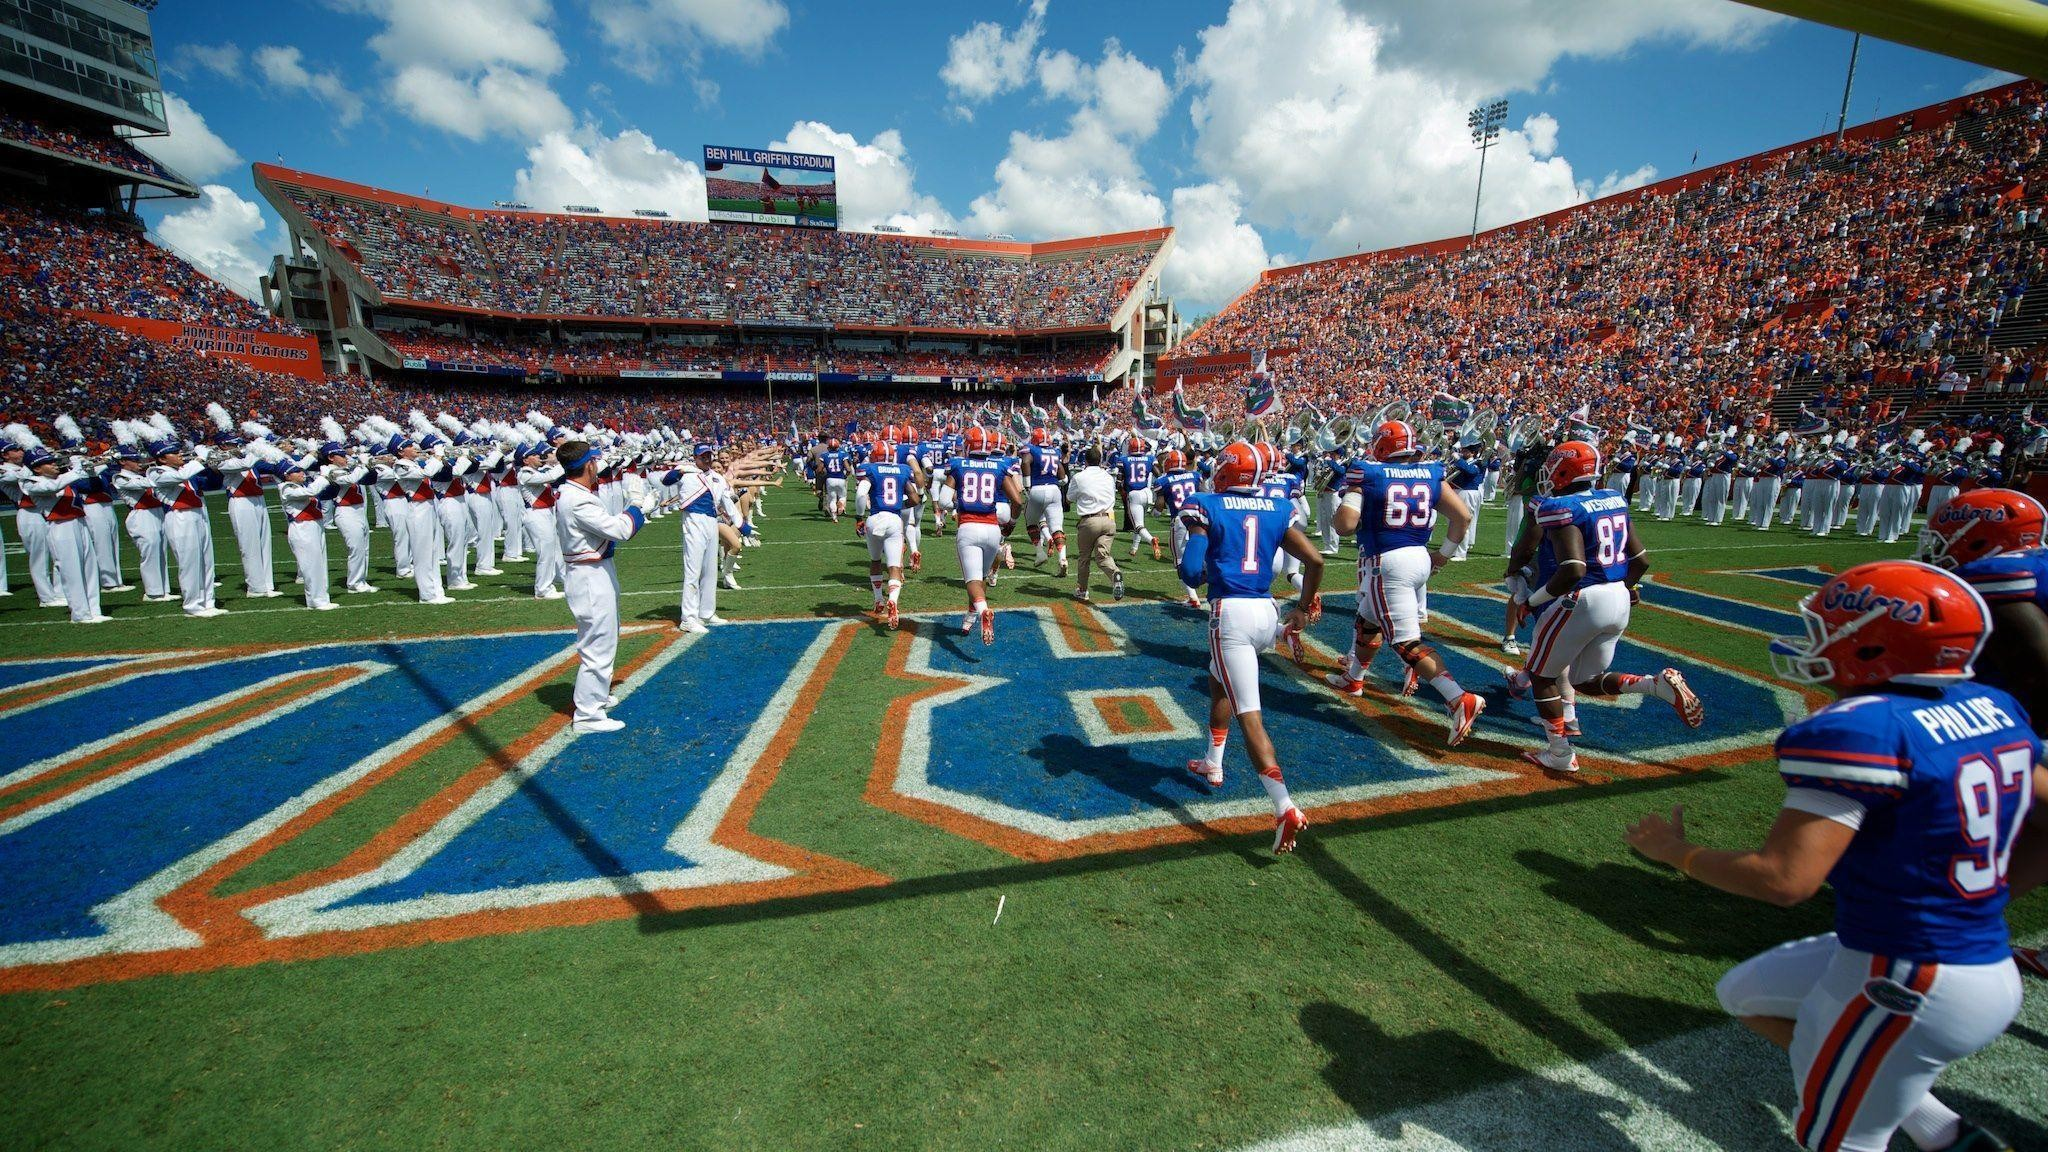 2048x1152 University of Florida Desktop Wallpaper - WallpaperSafari